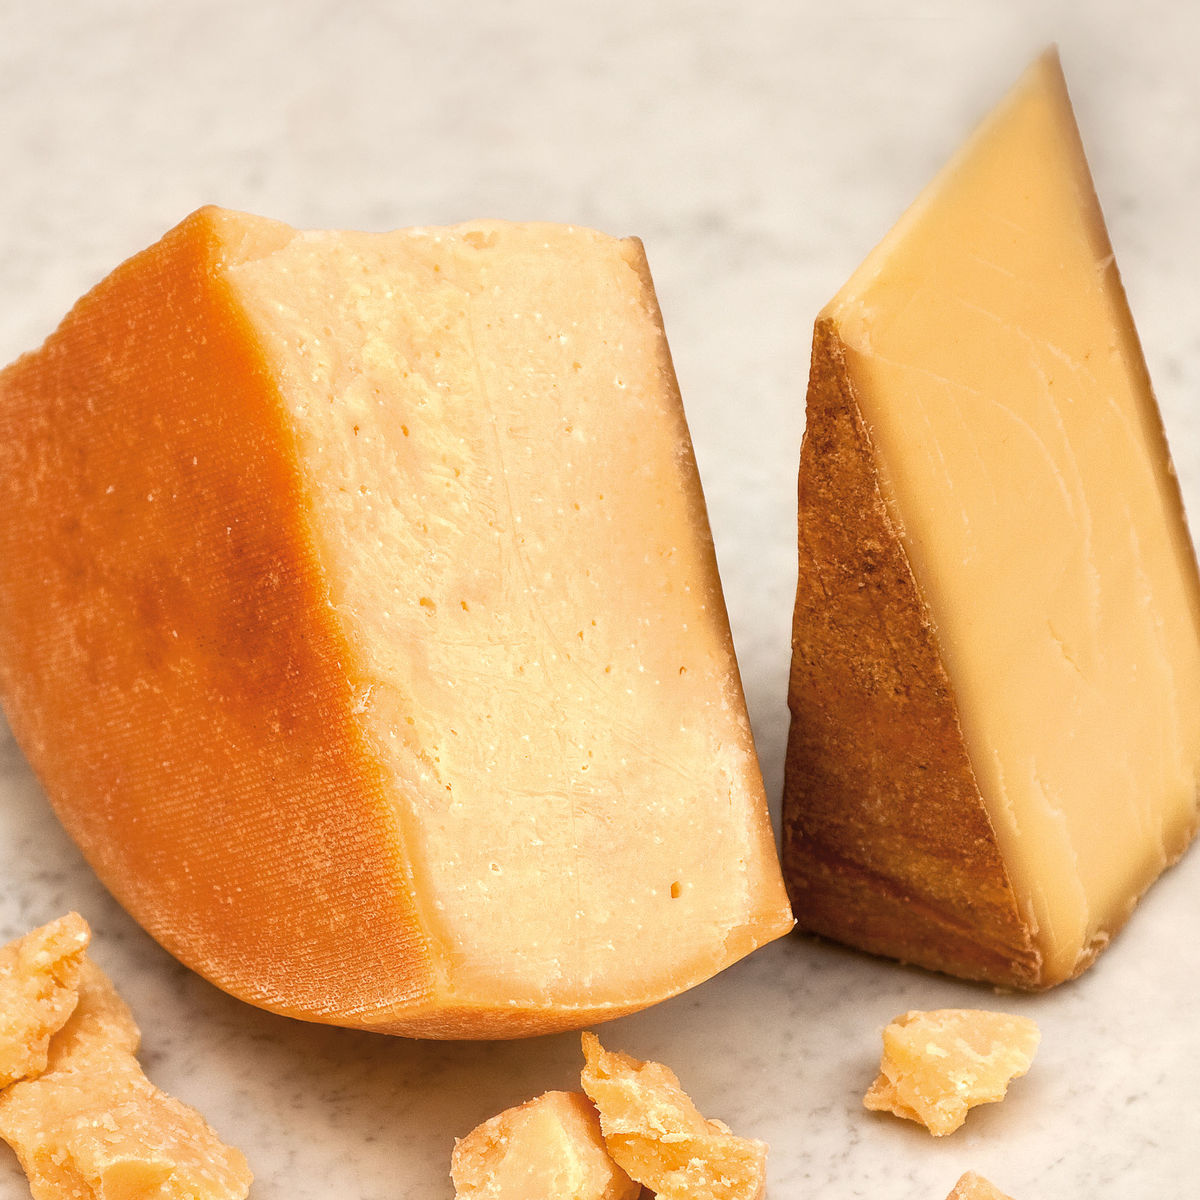 The picture shows several kinds of hard cheese.